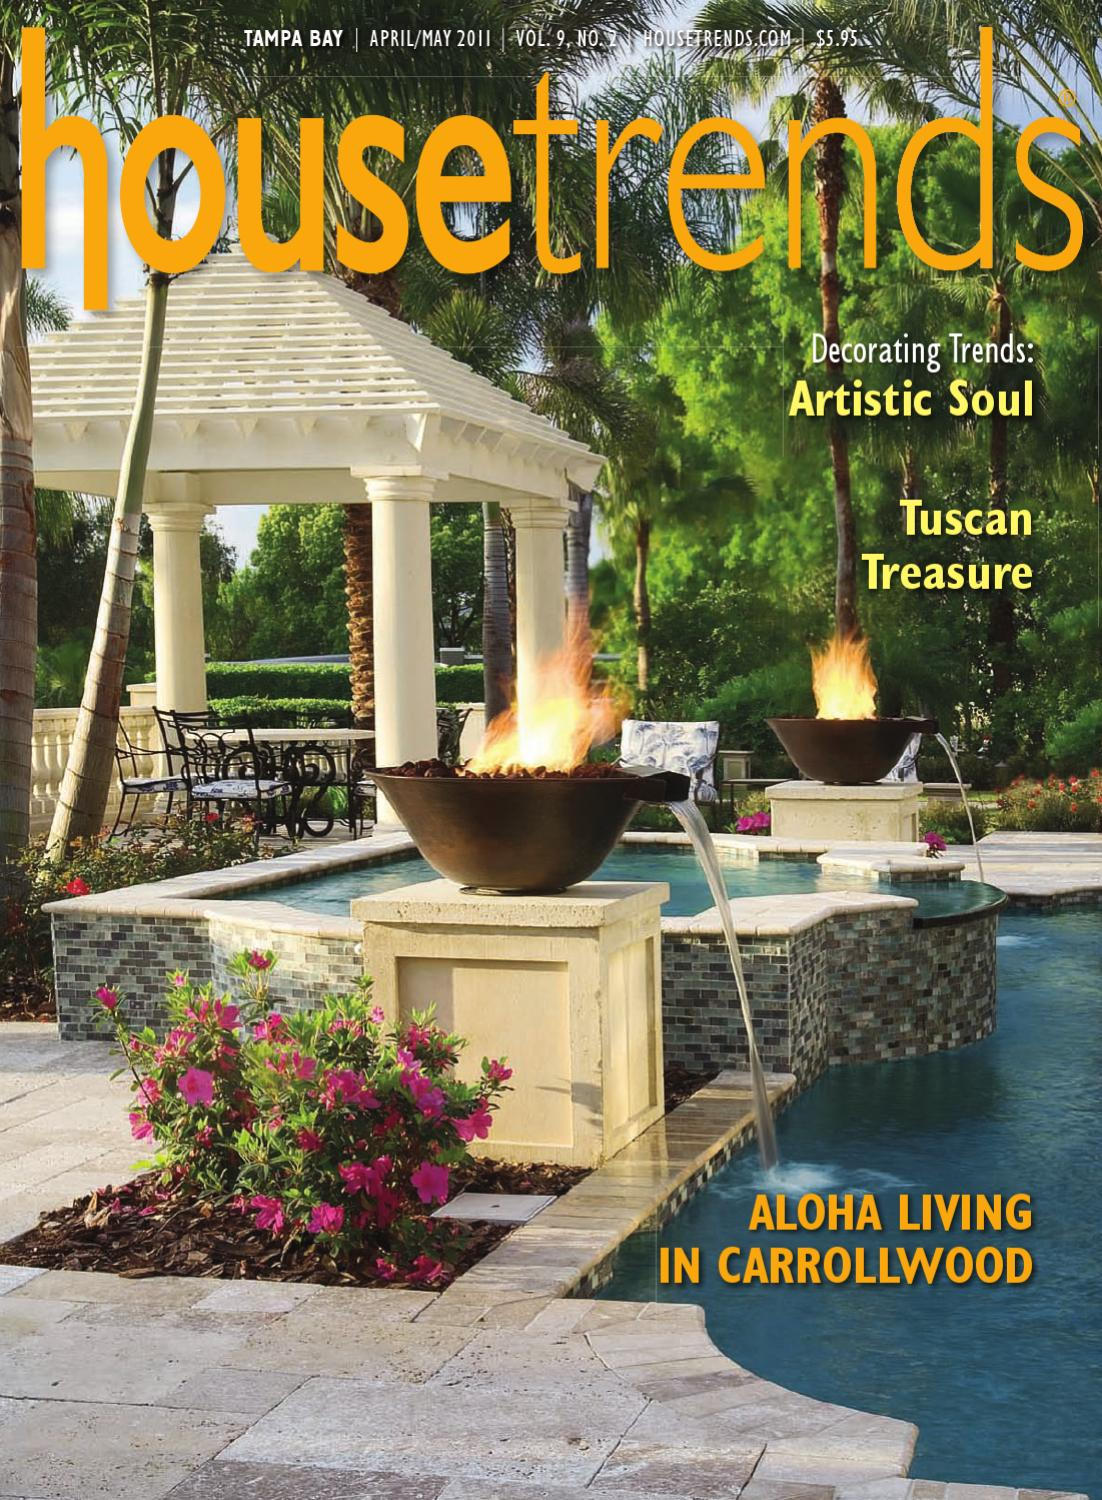 Tampa Housetrends by Housetrends issuu